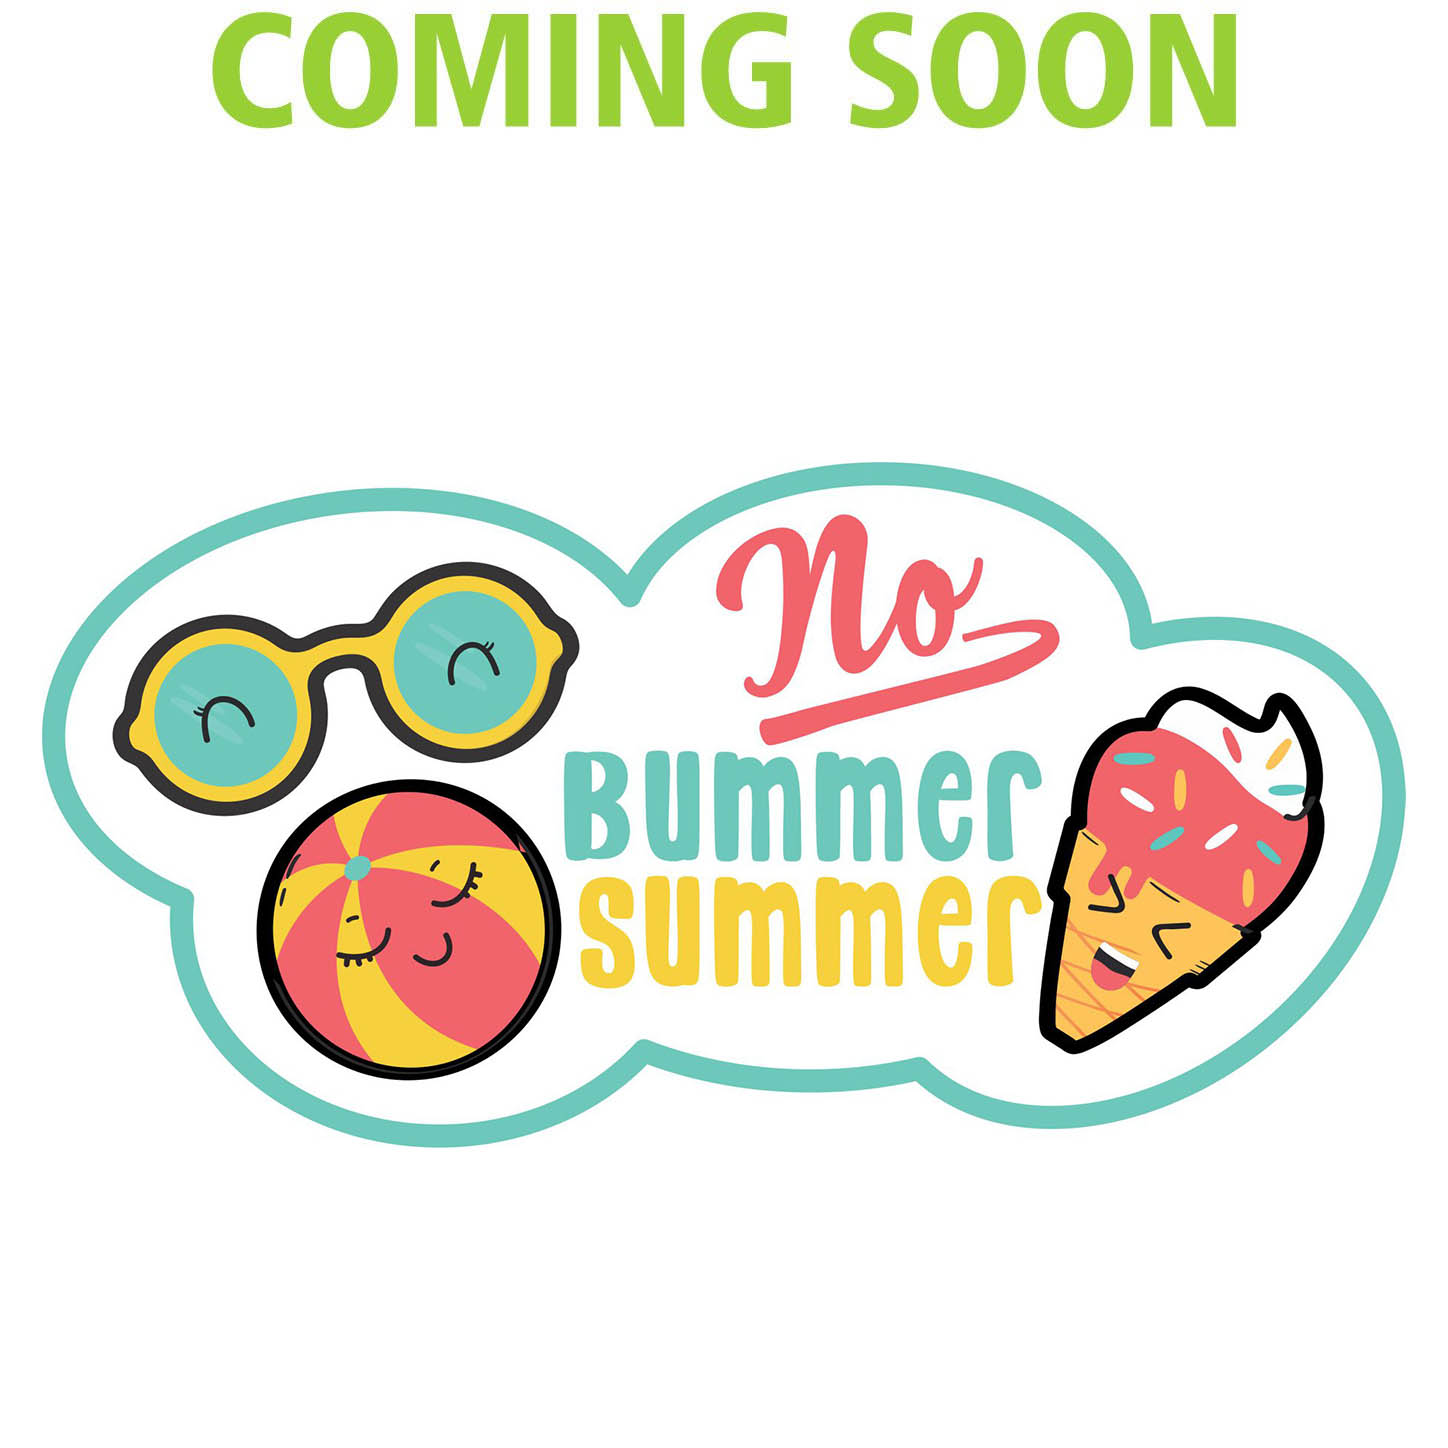 No Bummer Summer Patch Summer should be full of fun, not a bummer. Try new things, make new food, and have fun! #makingfriends #summer #gspatches #fun via @gsleader411